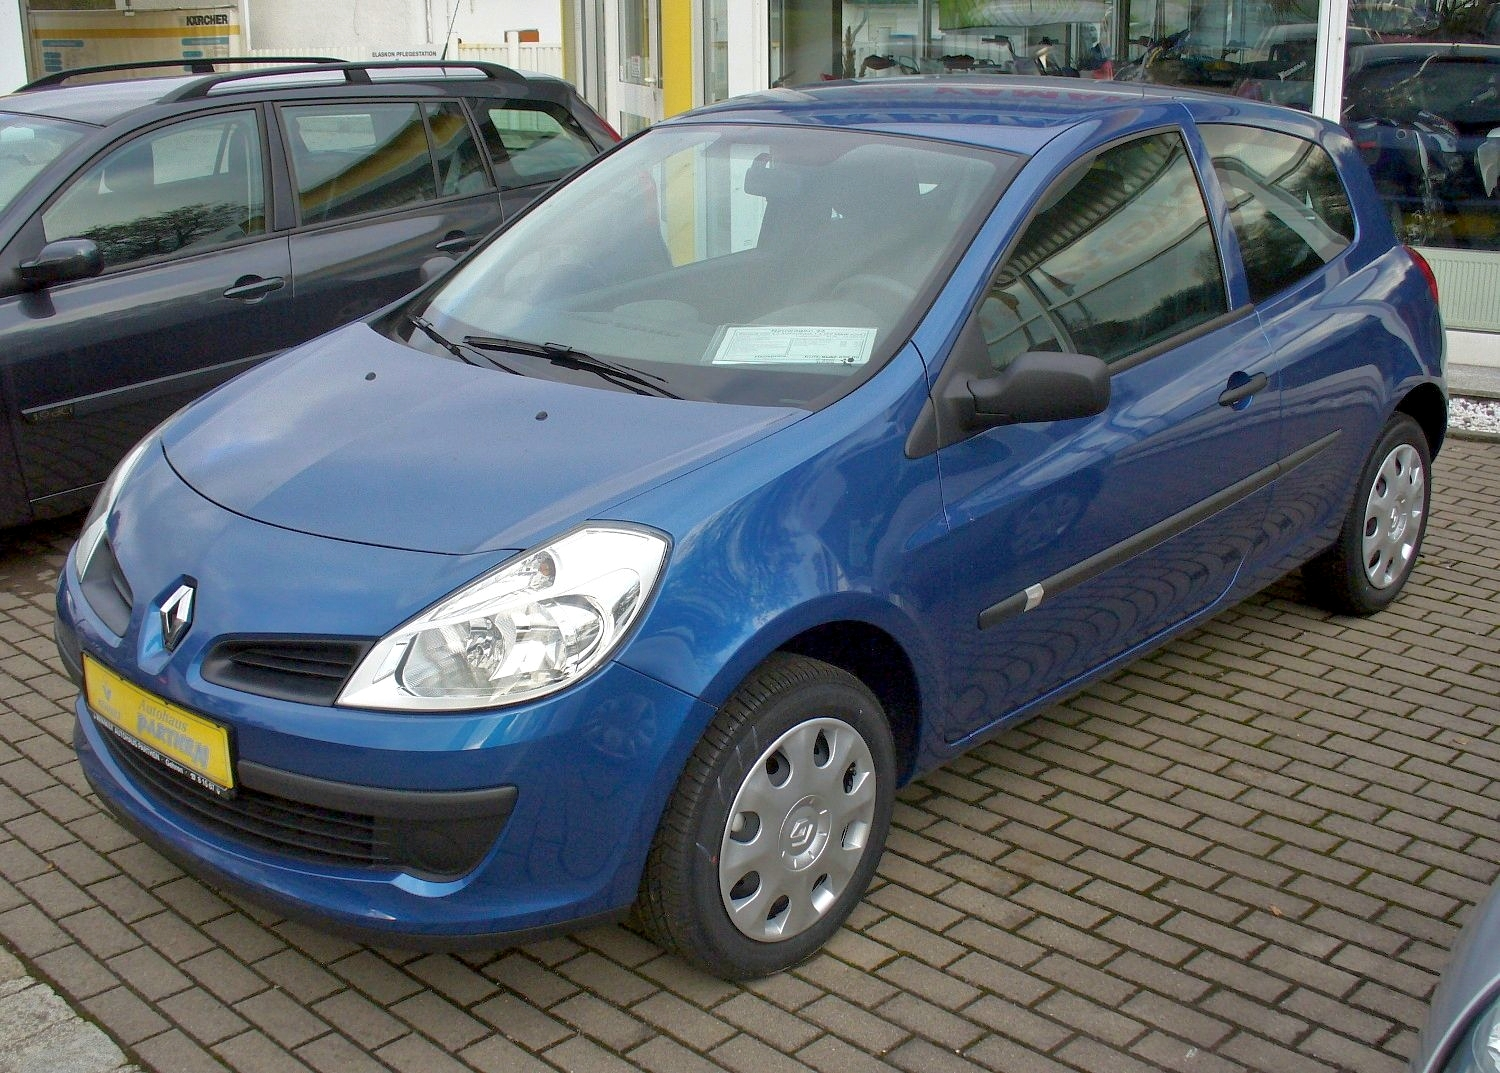 renault clio 2010 for sale renault mince his words. Black Bedroom Furniture Sets. Home Design Ideas